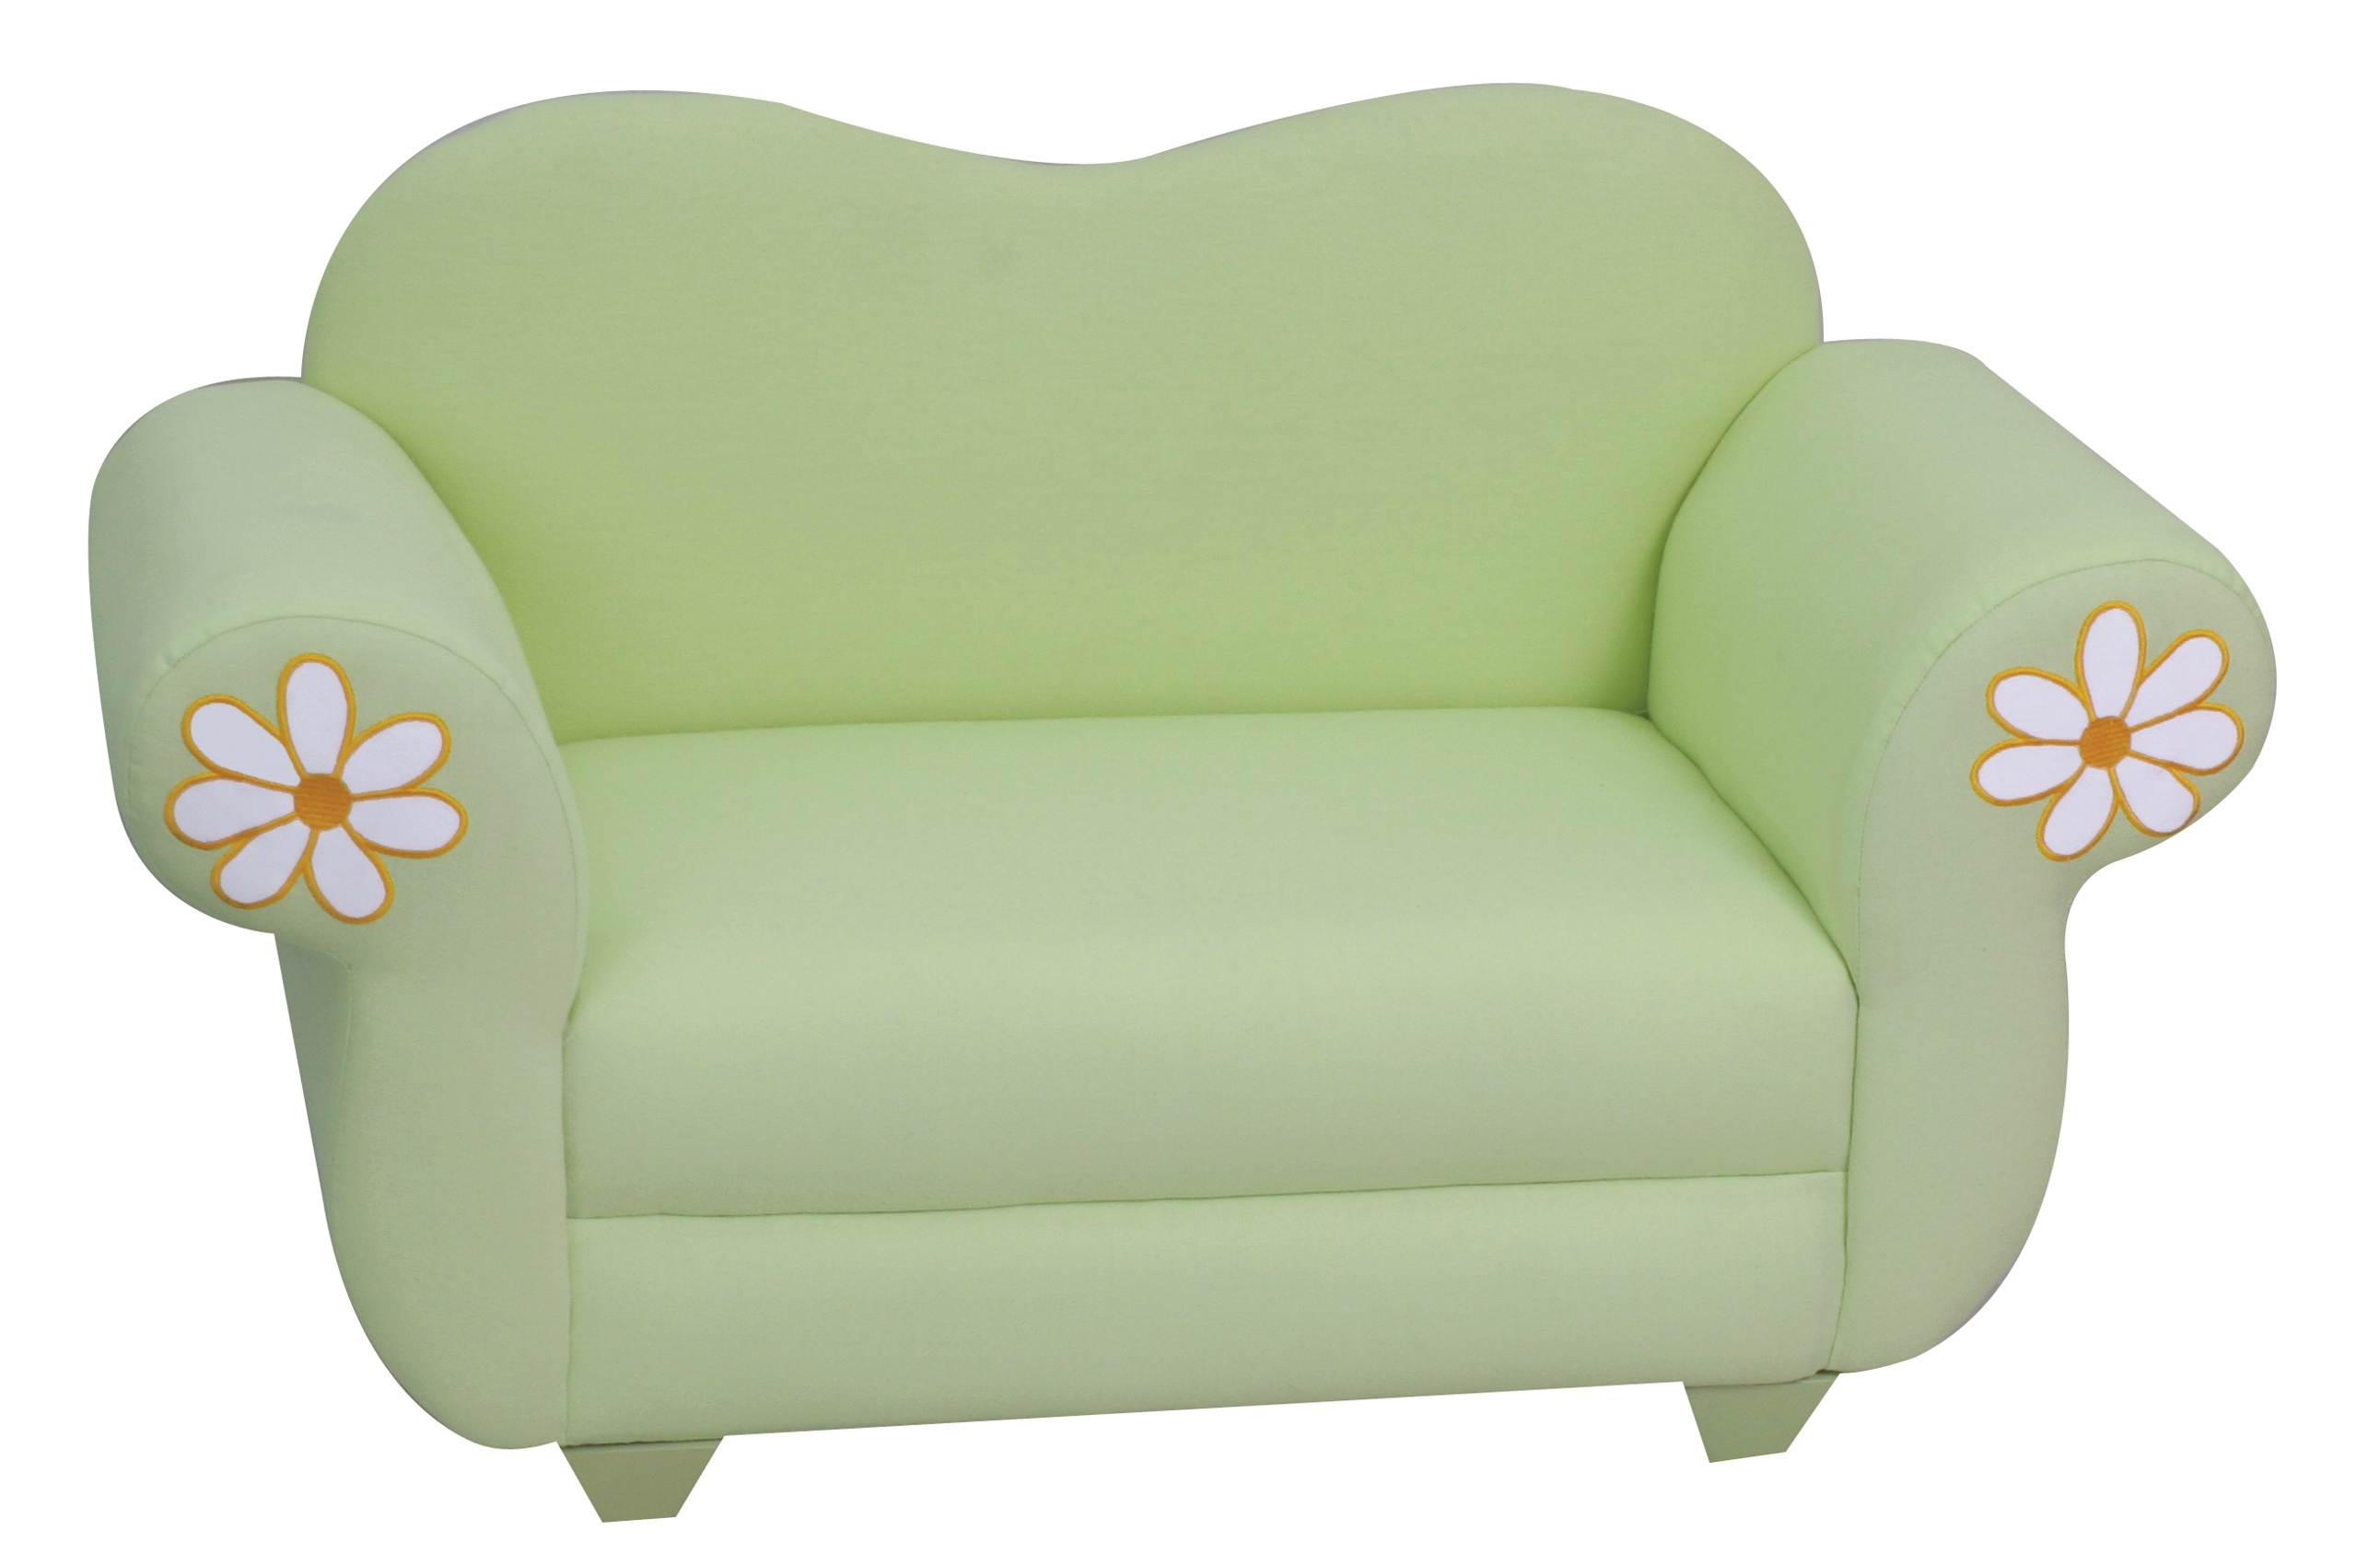 Sofas And Chair Regarding Single Seat Sofa Chairs (Image 12 of 15)